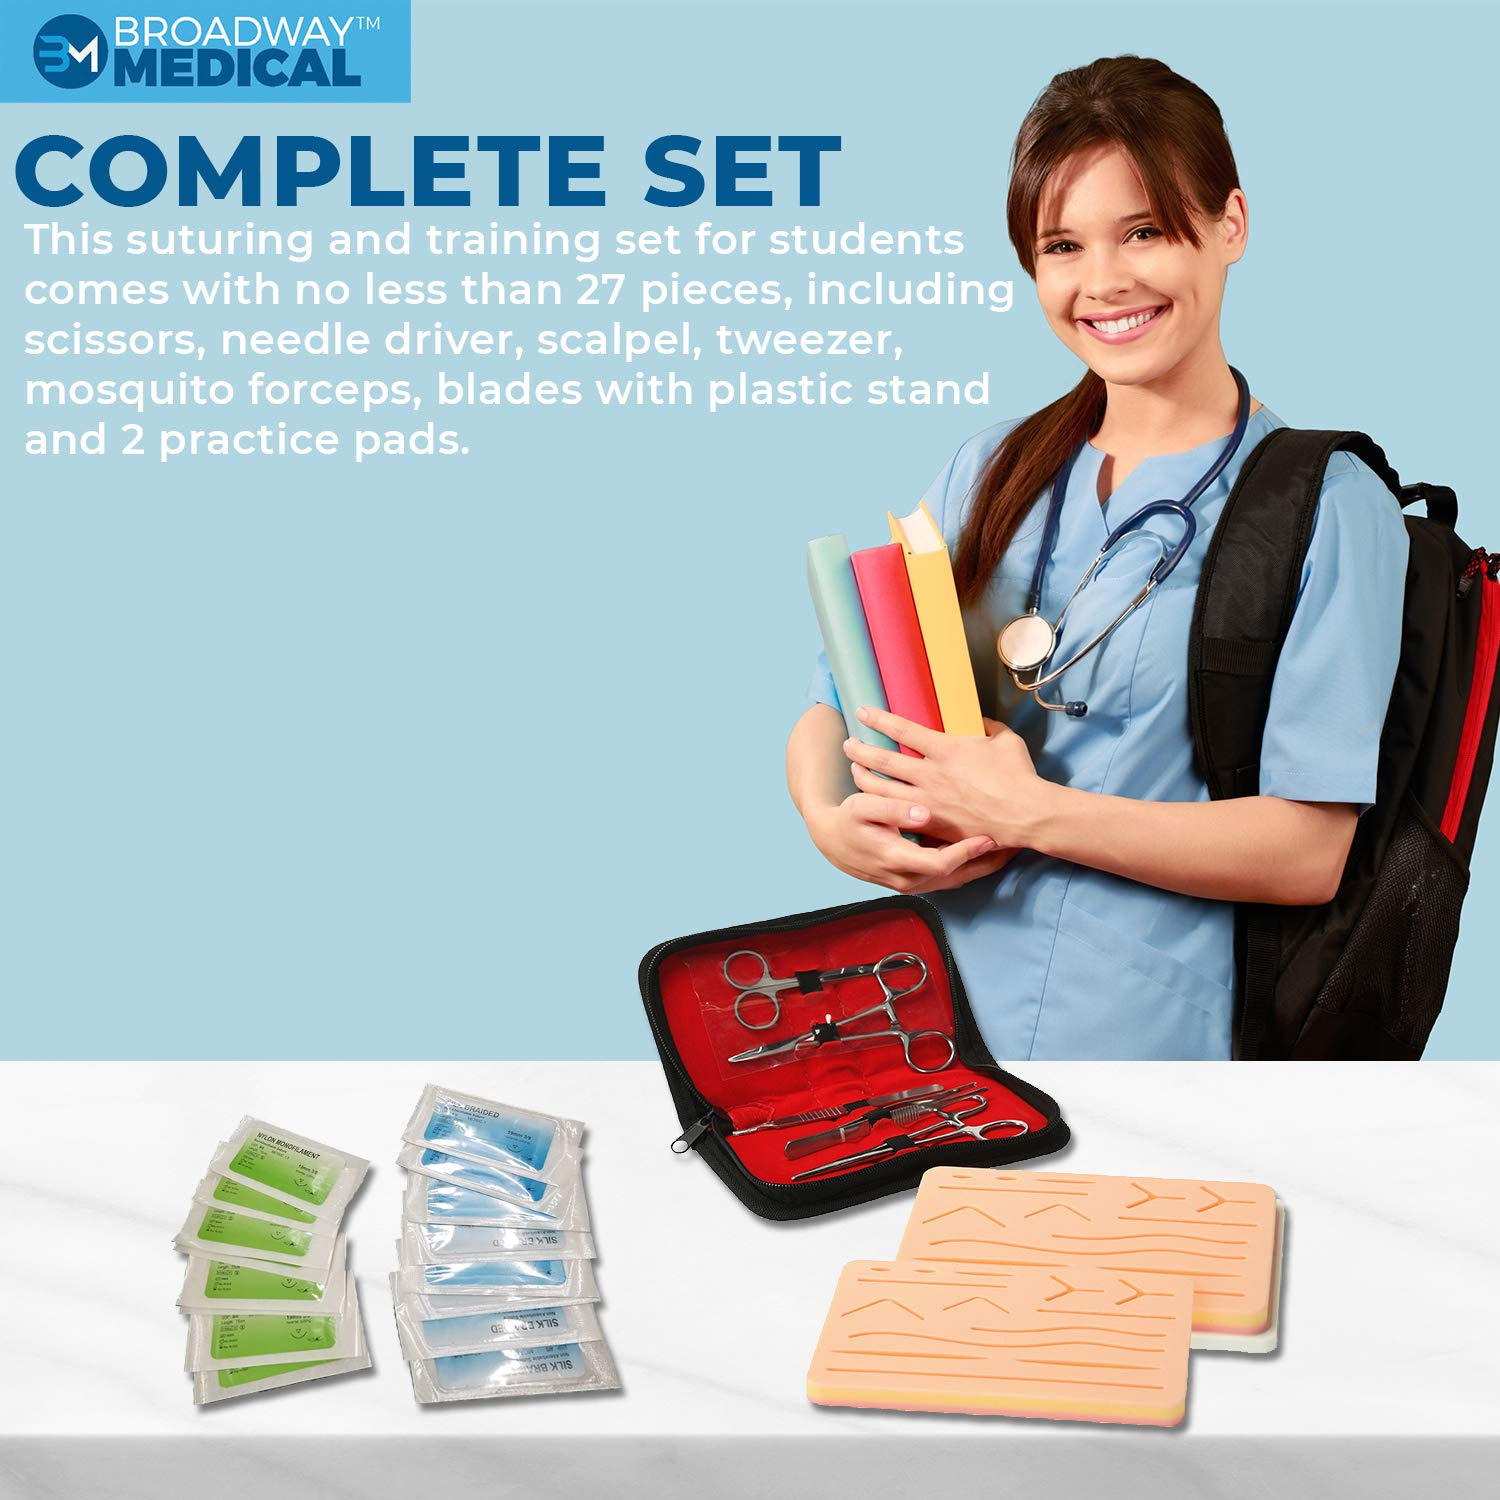 Complete Suture Practice Kit: